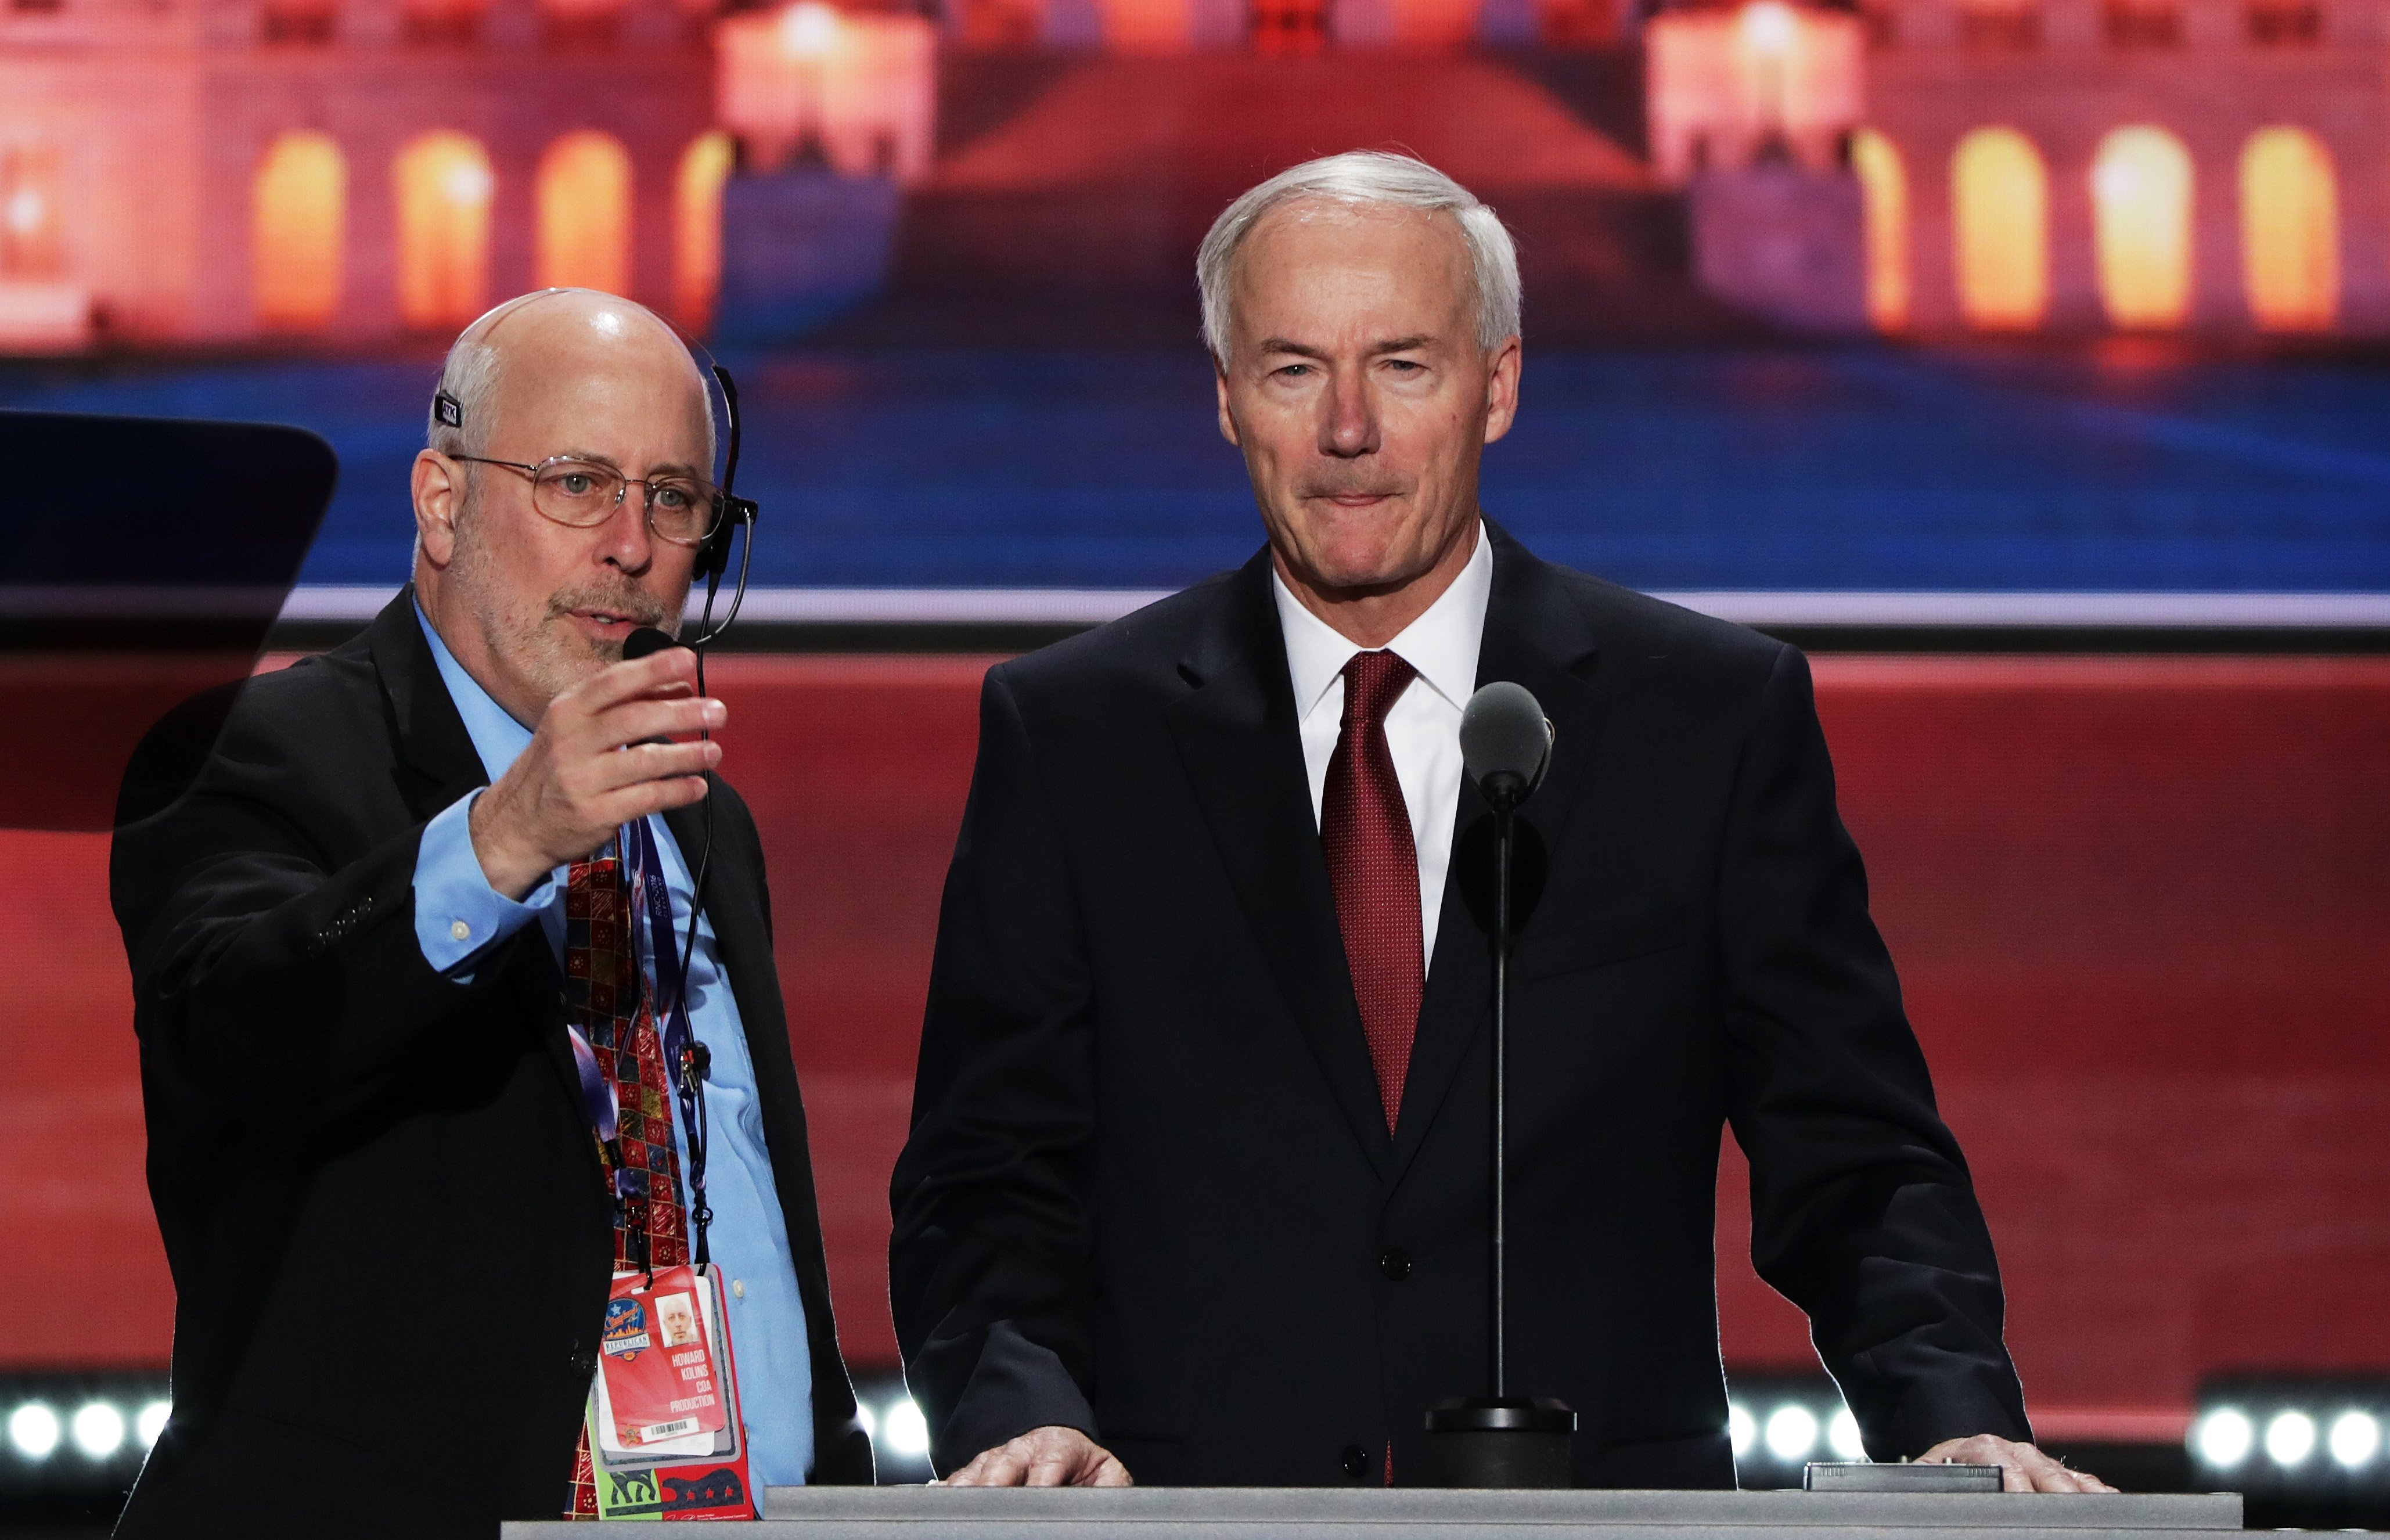 Arkansas Governor Asa Hutchinson stands on stage prior to the start of the second day of the Republican National Convention on July 19, 2016 at the Quicken Loans Arena in Cleveland.